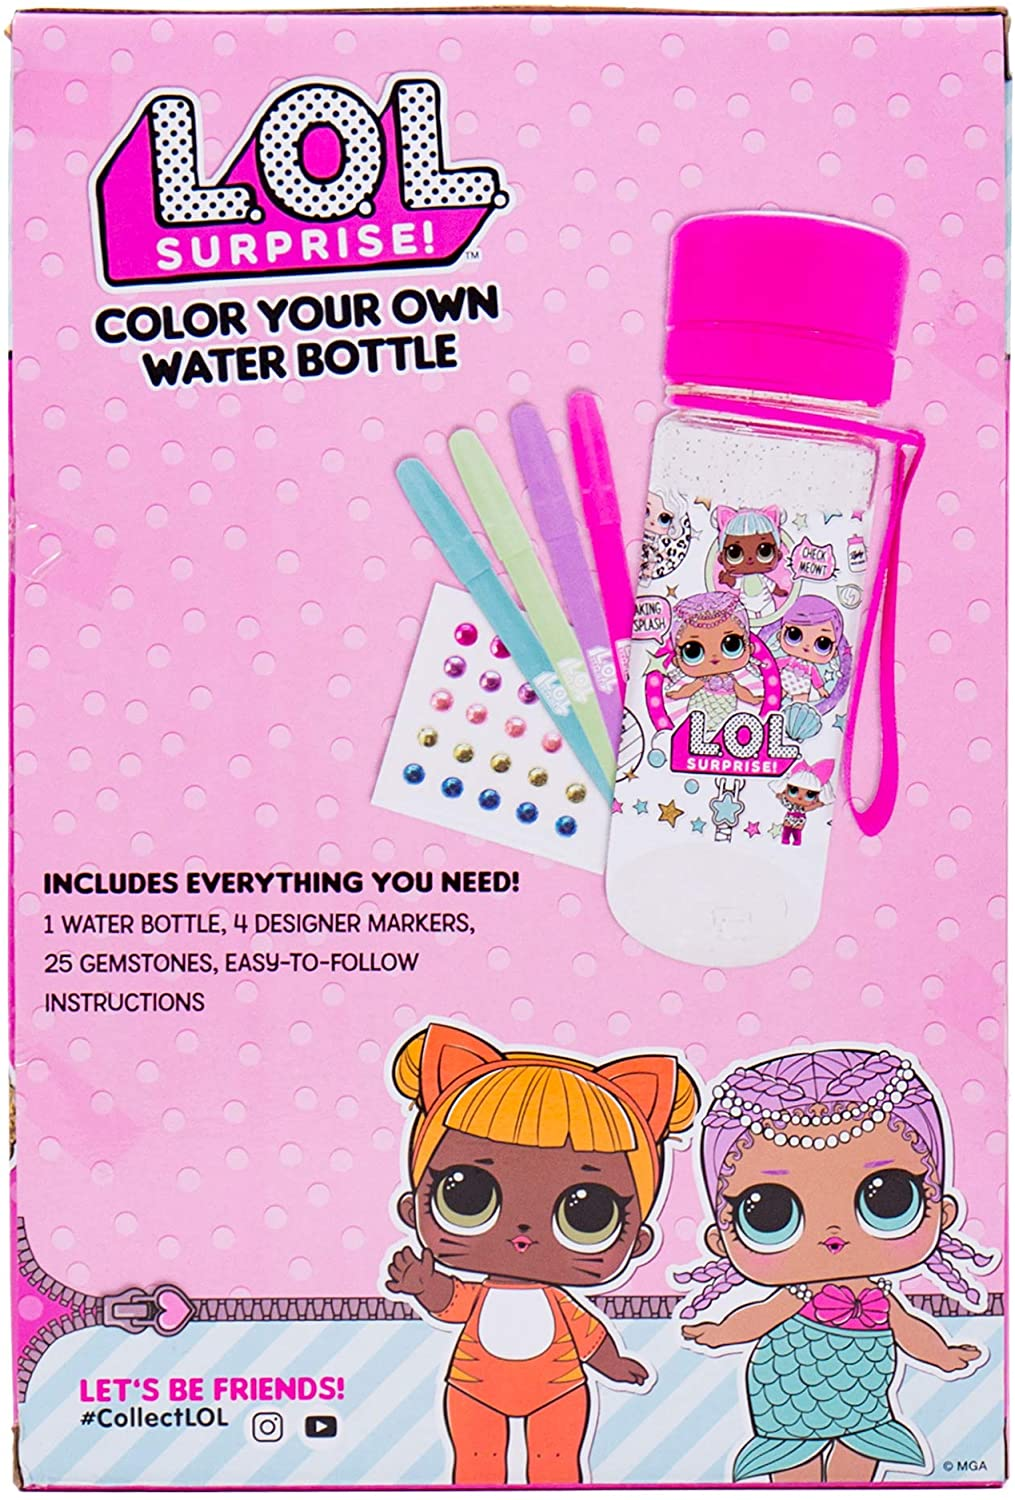 L.O.L. Surprise! Color Your Own Water Bottle by Horizon Group USA,DIY Bottle Coloring Craft Kit, BPA Free, Decorate Your Glitter Water Bottle with Colorful Markers & Gemstones, Multi Colored